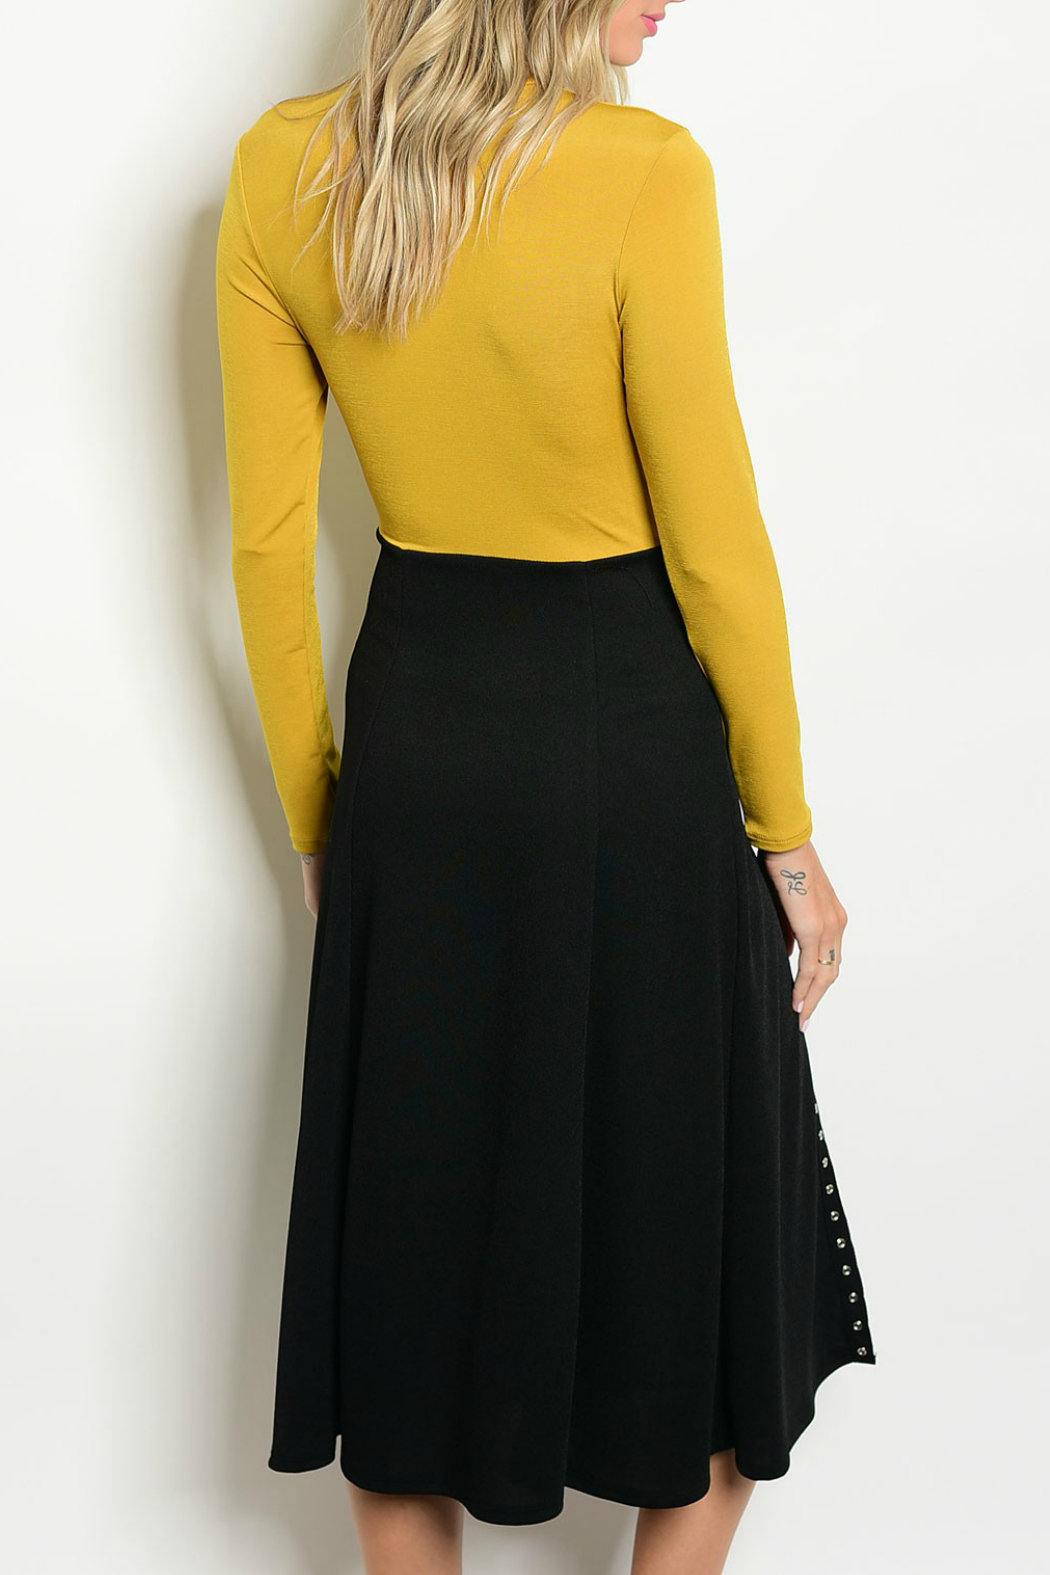 House of Atelier Mustard Snap Dress - Back Cropped Image